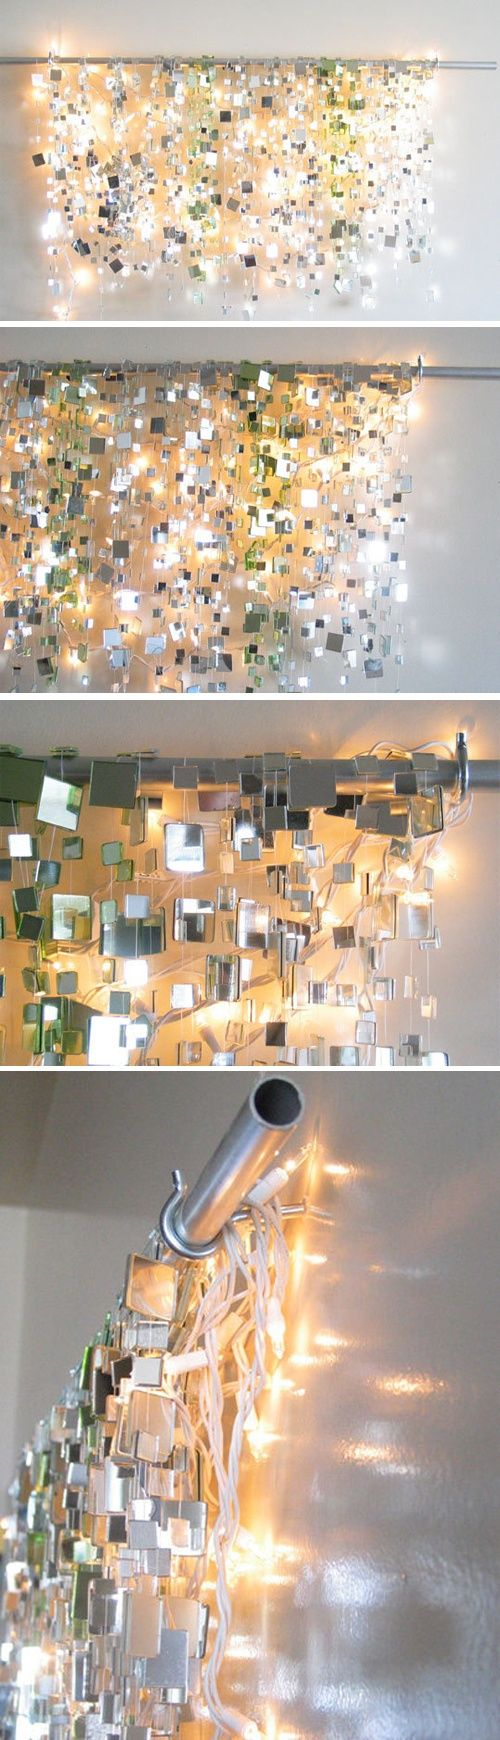 Small Mirror Tiles Glued To Fishing Line With Lights